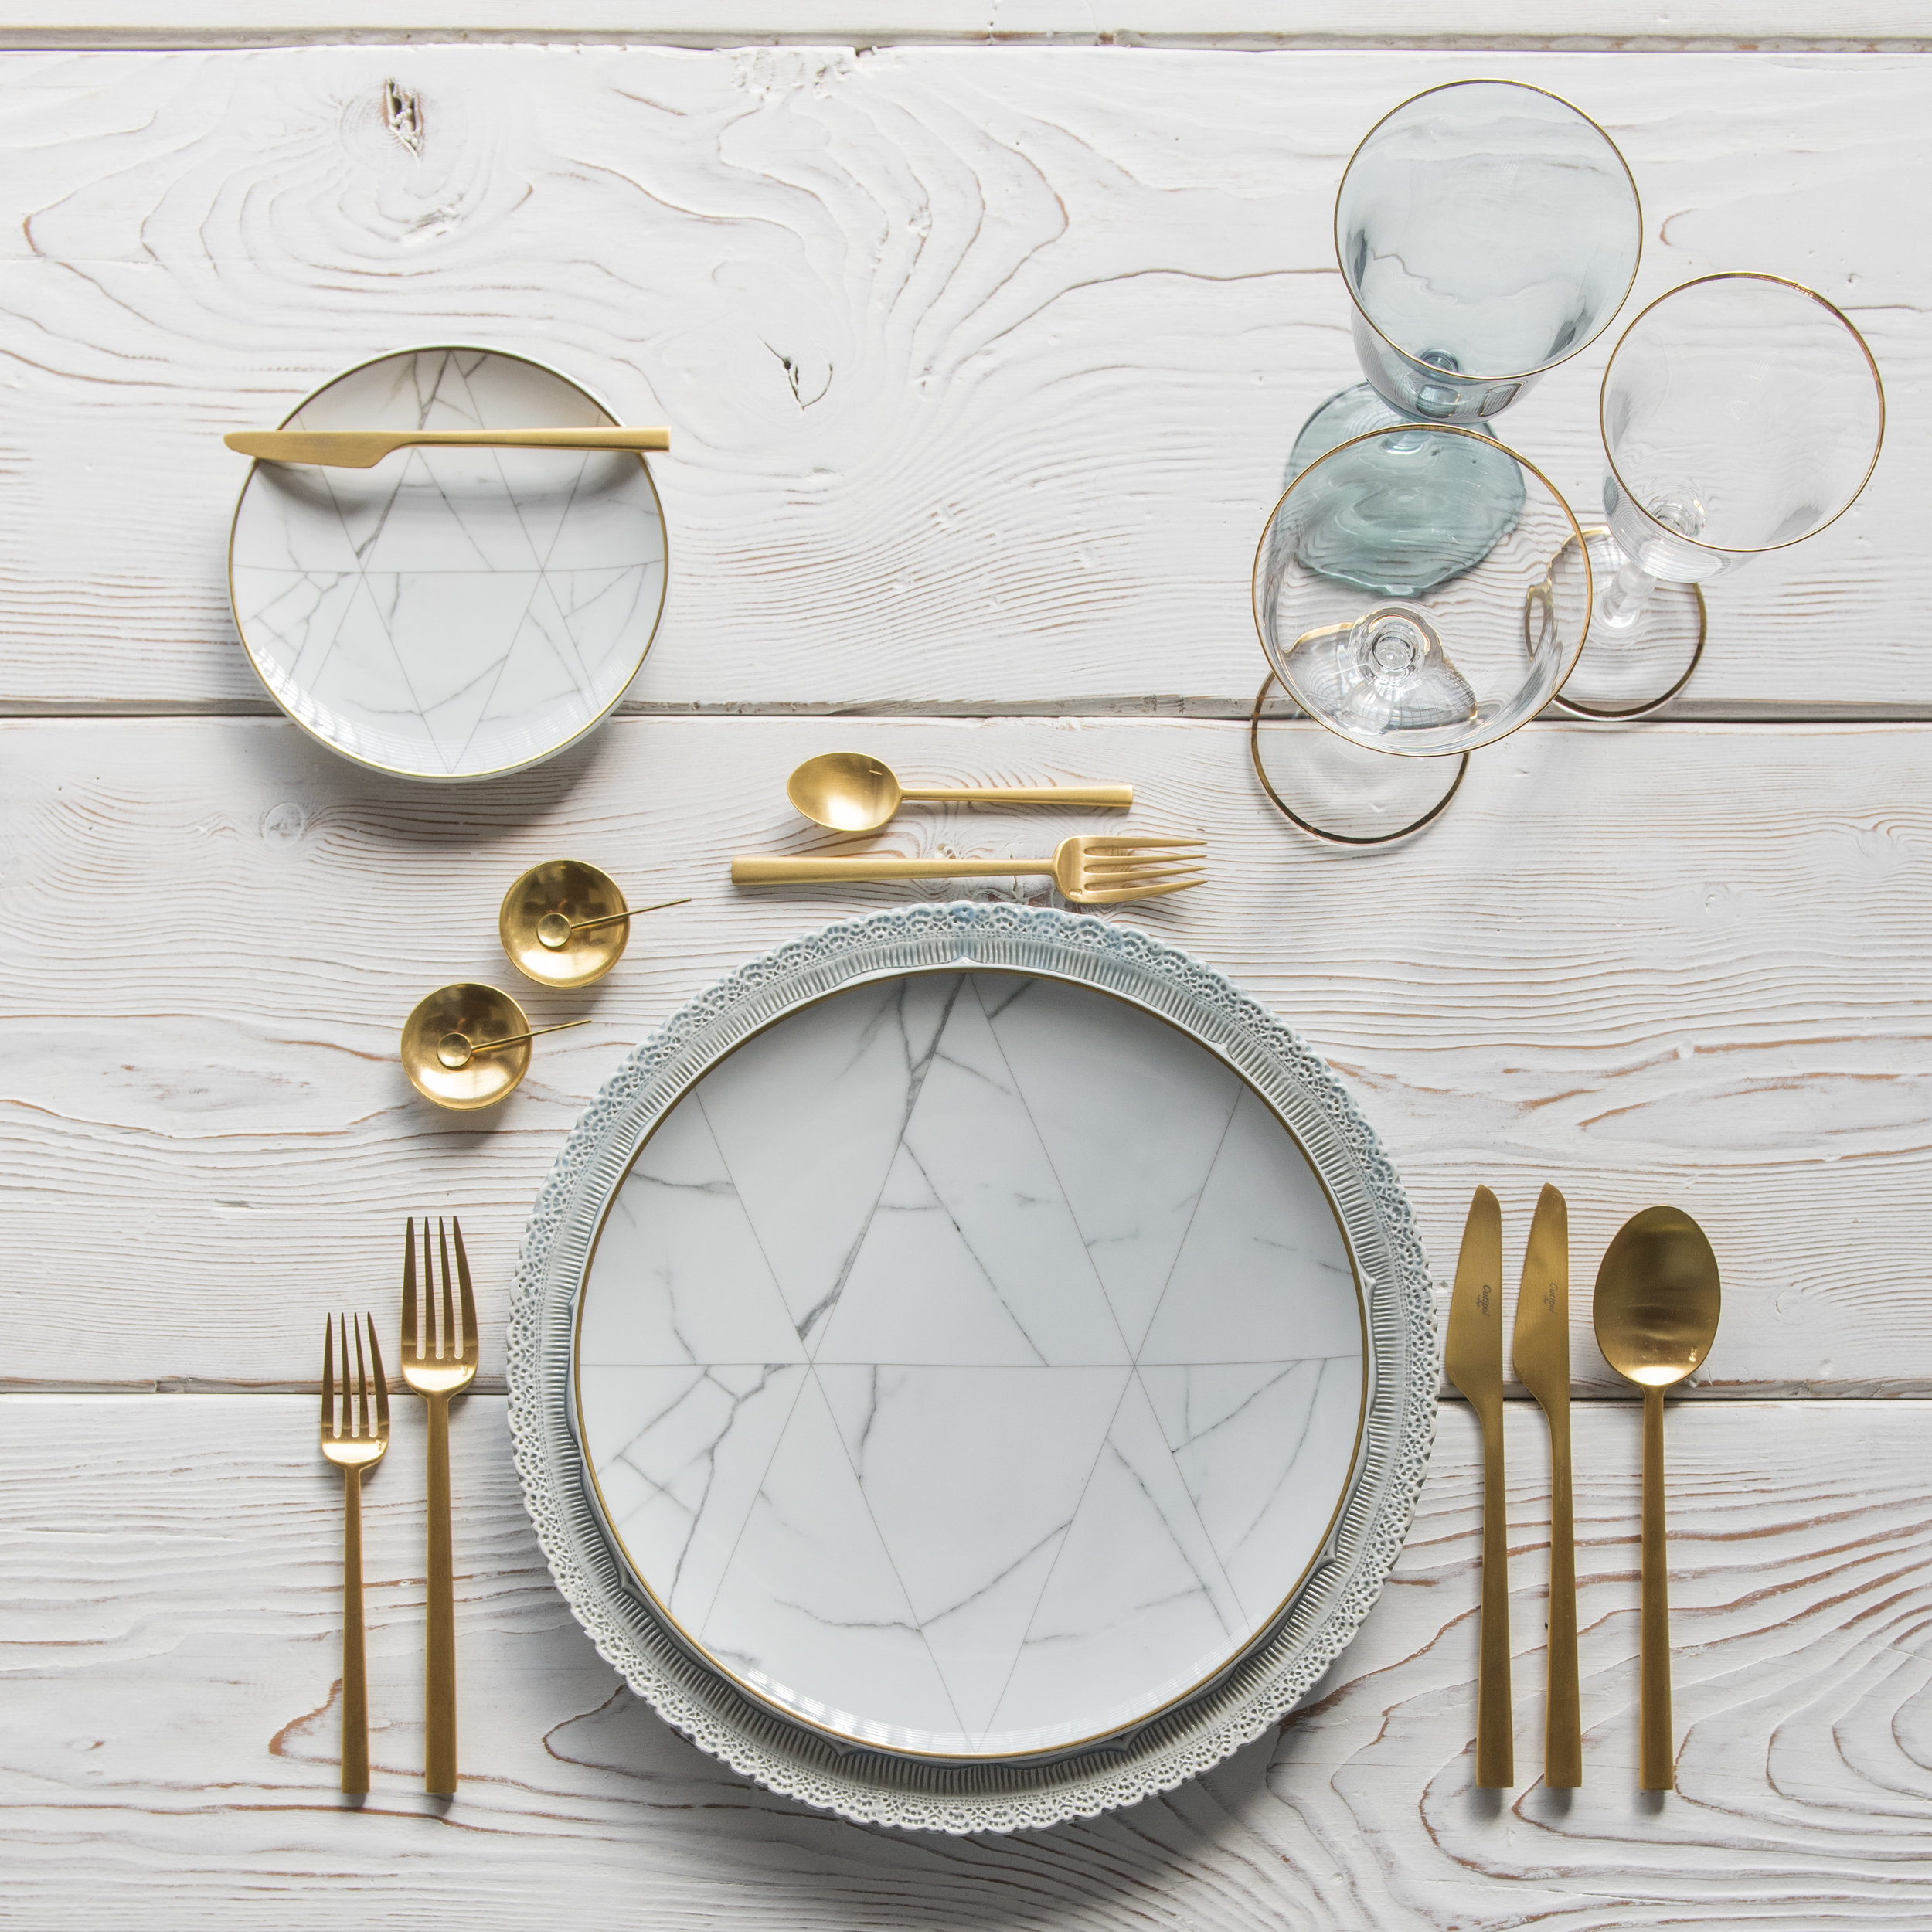 RENT: Lace Chargers in Dusty Blue + Carrara Dinnerware + Rondo Flatware in Brushed 24k Gold + Chloe 24k Gold Rimmed Stemware + Chloe 24k Gold Rimmed Goblet in Agave + 14k Gold Salt Cellars + Tiny Gold Spoons  SHOP:Carrara Dinnerware + Rondo Flatware in Brushed 24k Gold + Chloe 24k Gold Rimmed Stemware +14k Gold Salt Cellars + Tiny Gold Spoons